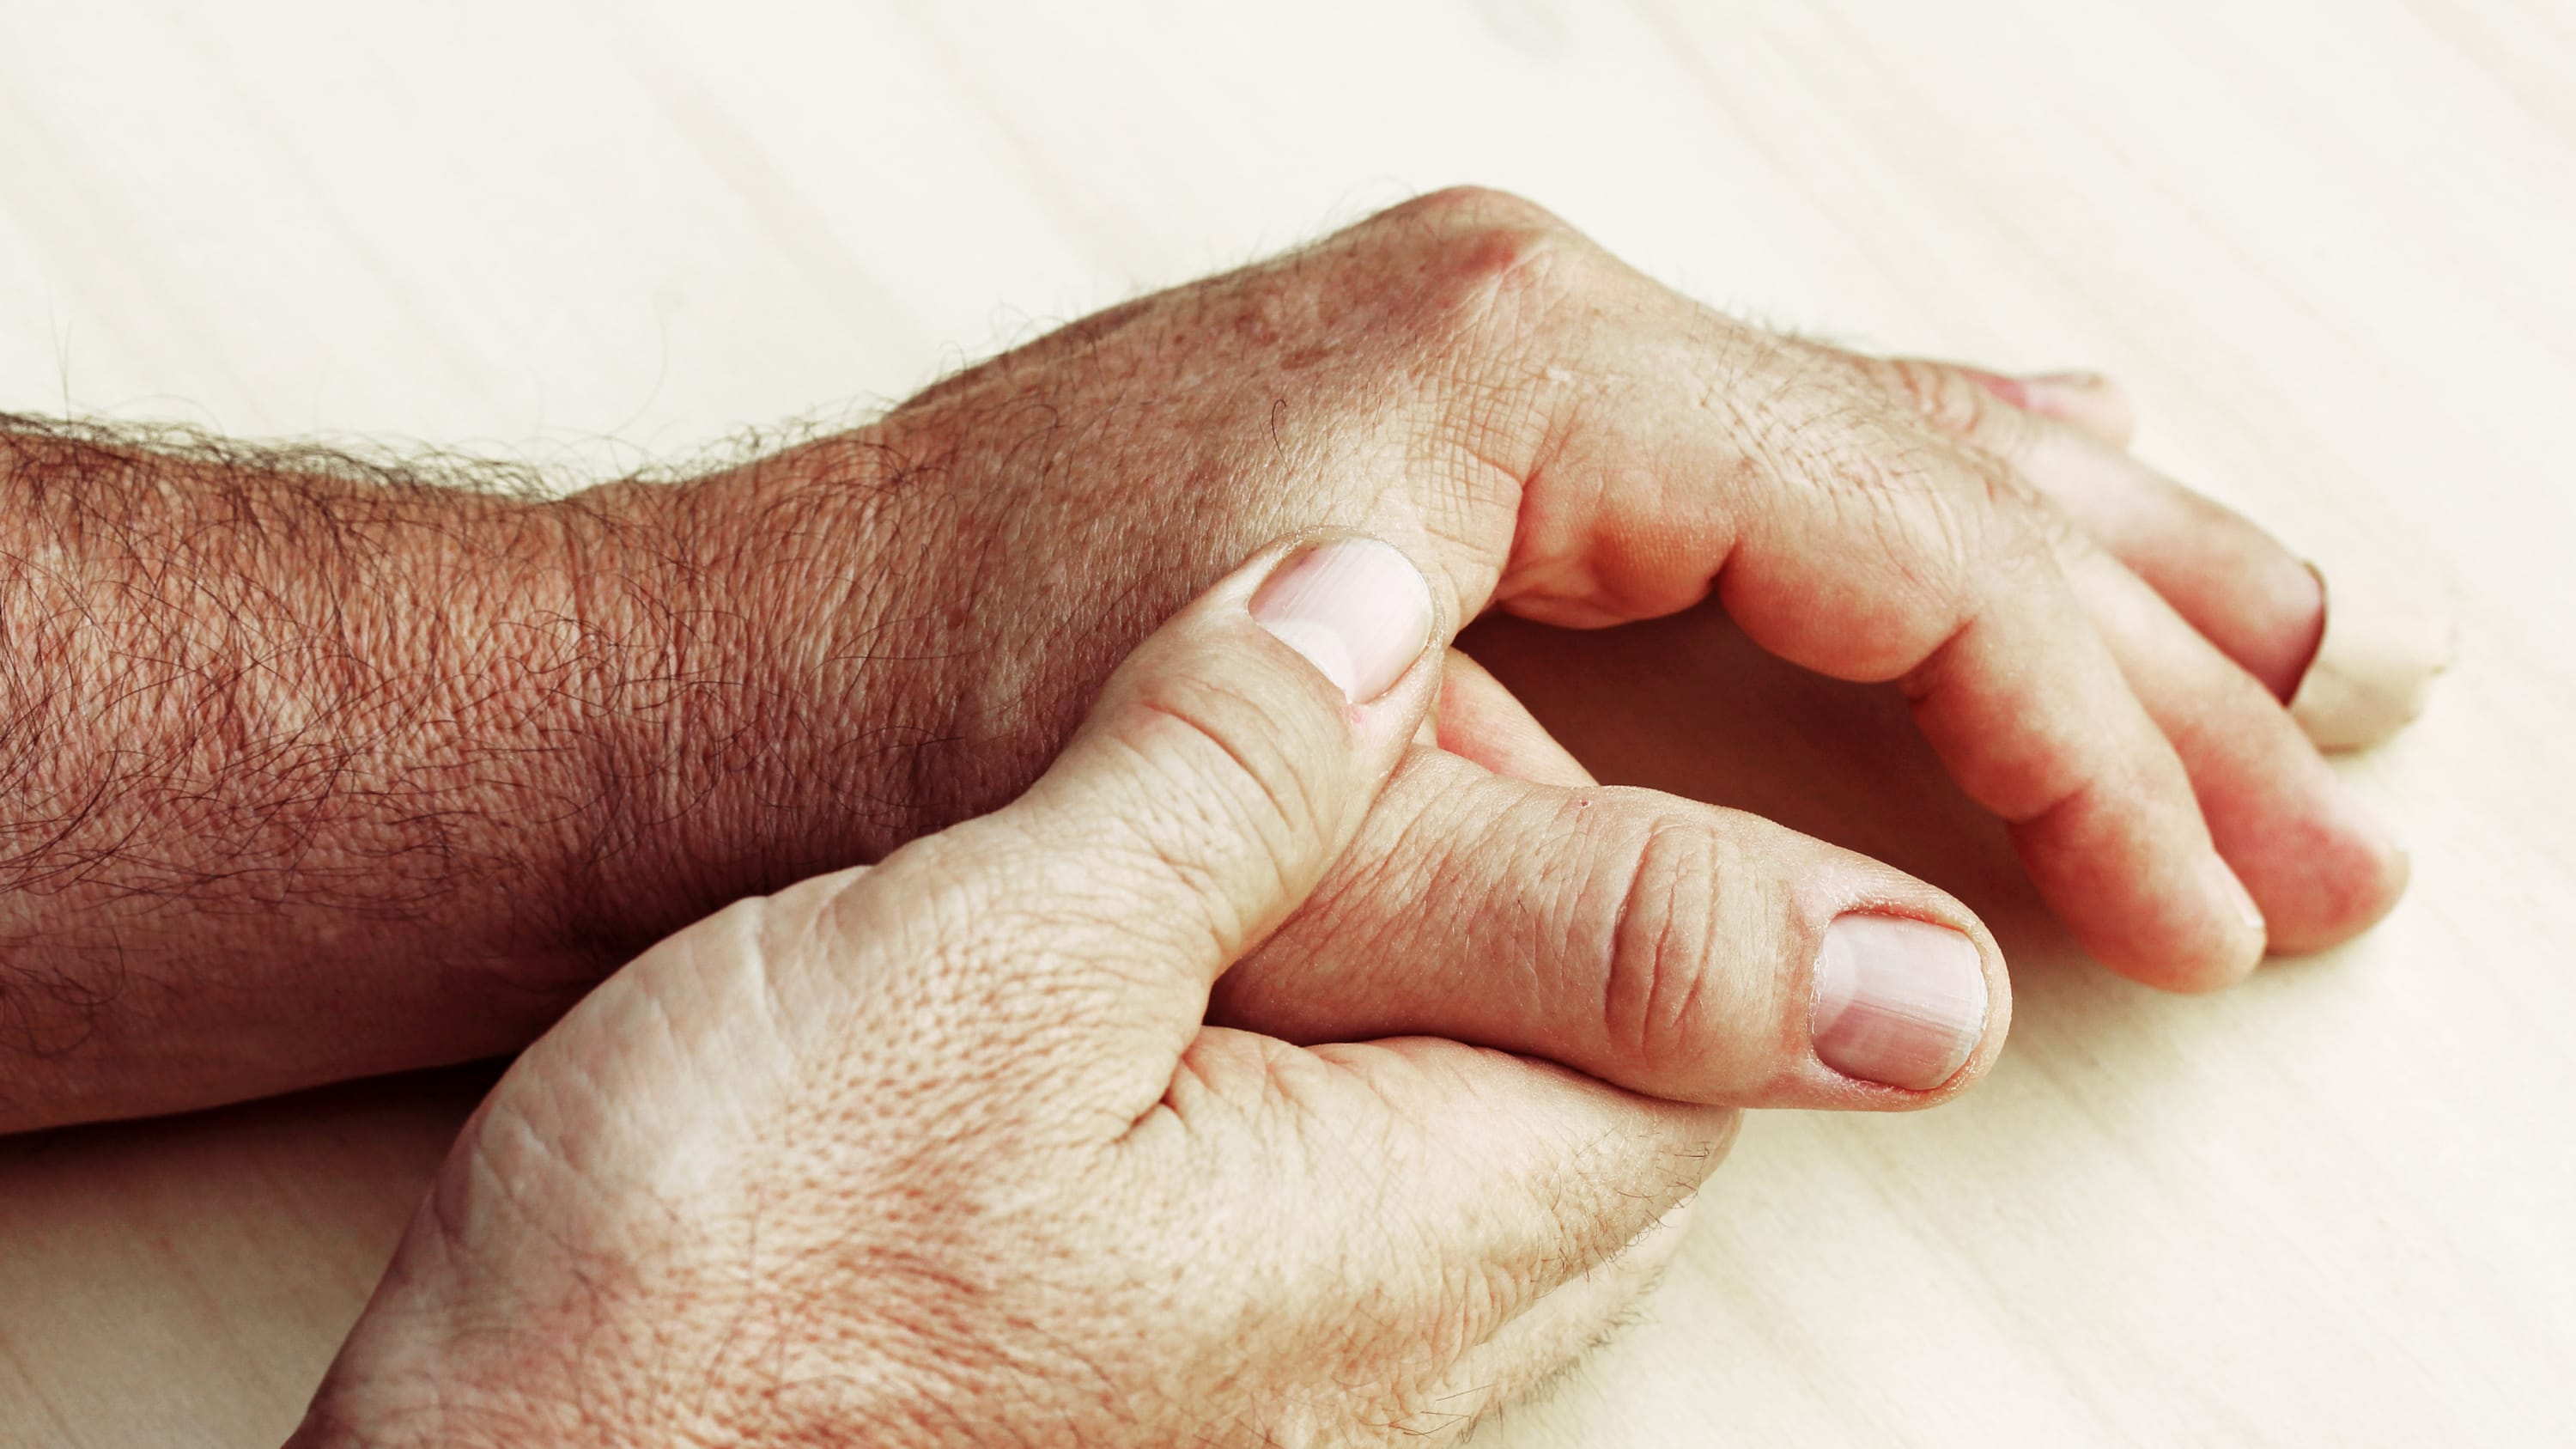 A person massages their hands, possibly because of Dupuytren's syndrome.